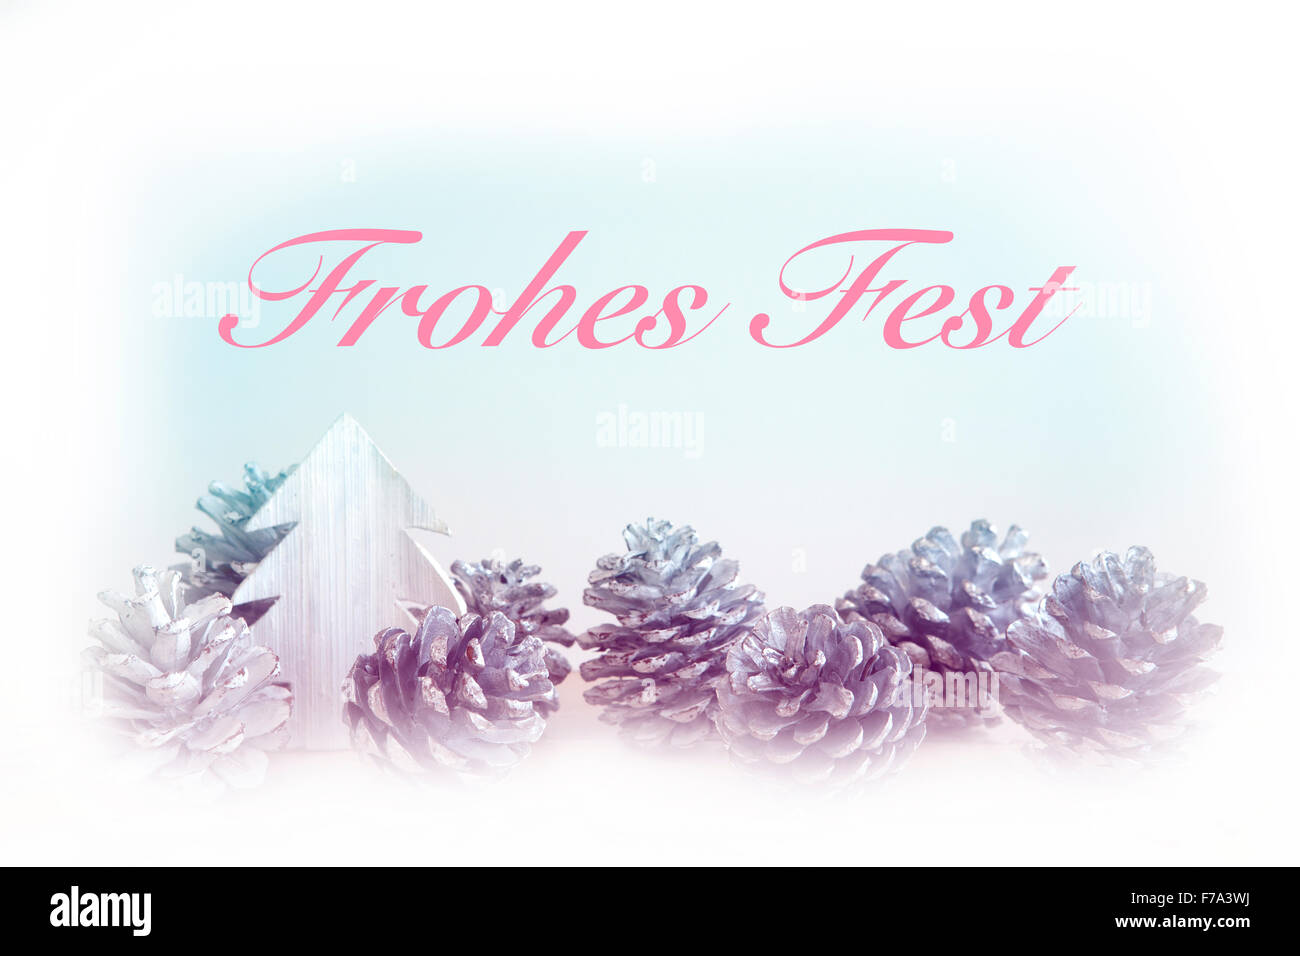 german 'Frohes Fest' (Merry Christmas) with pinecones and toy tree - Stock Image